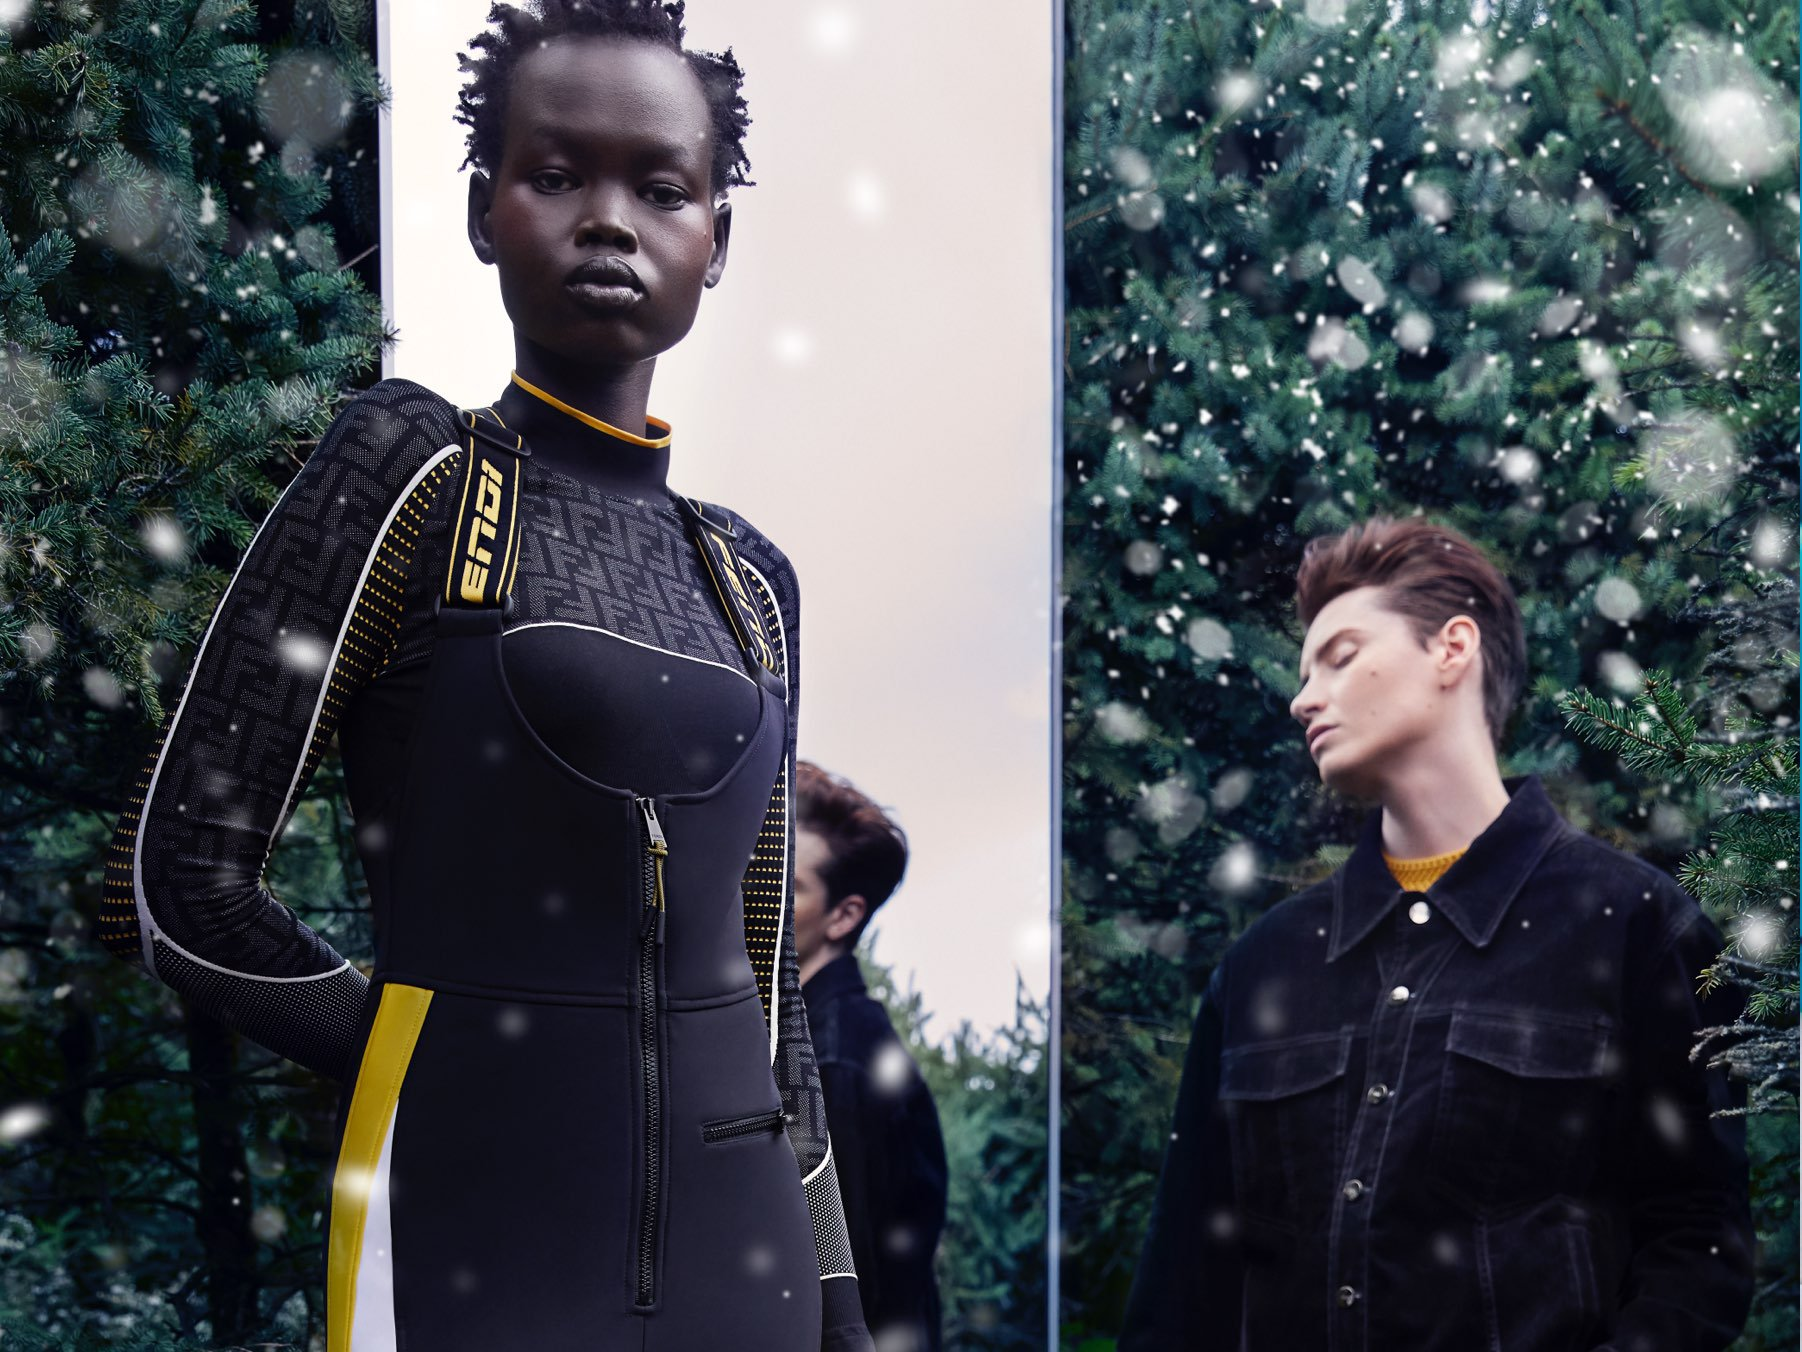 Two models standing in front of a mirror and a hedge—the female model wearing a Fendi ski jumpsuit in black and yellow, and the male model wearing a black outfit.